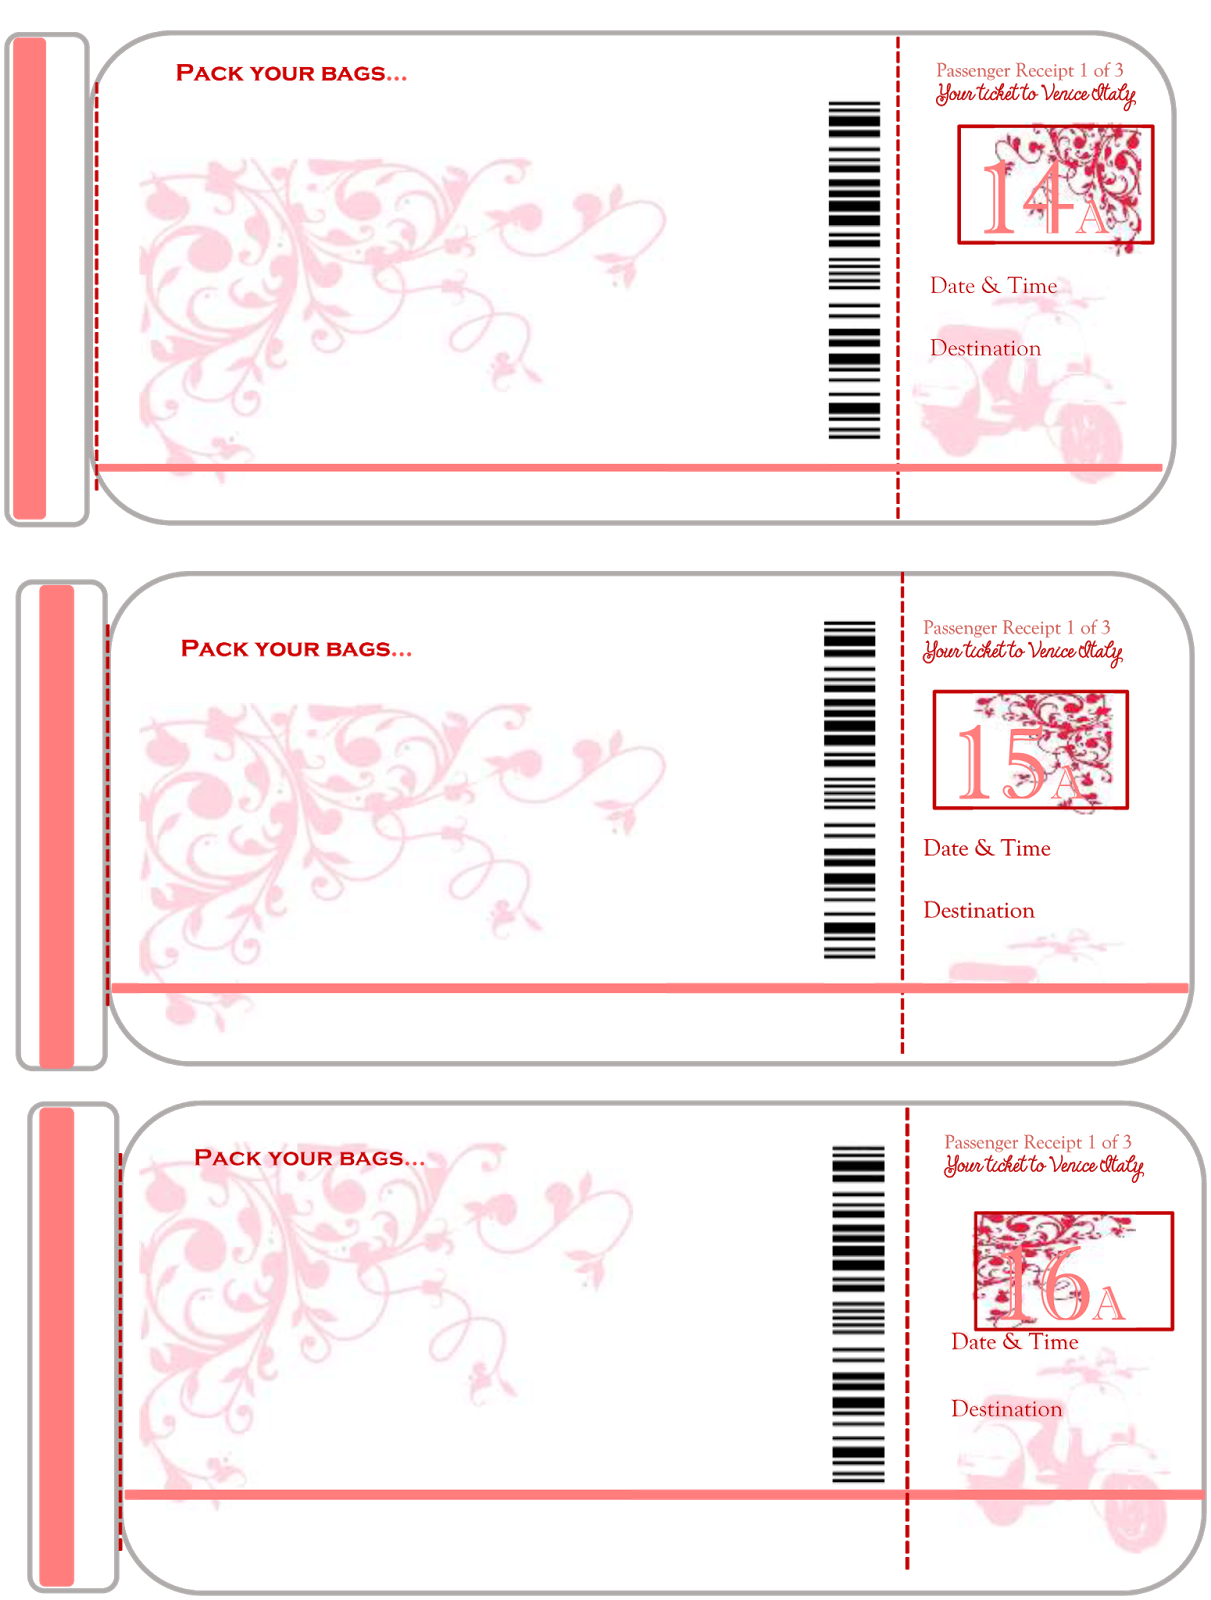 Smart image with regard to free printable passport template